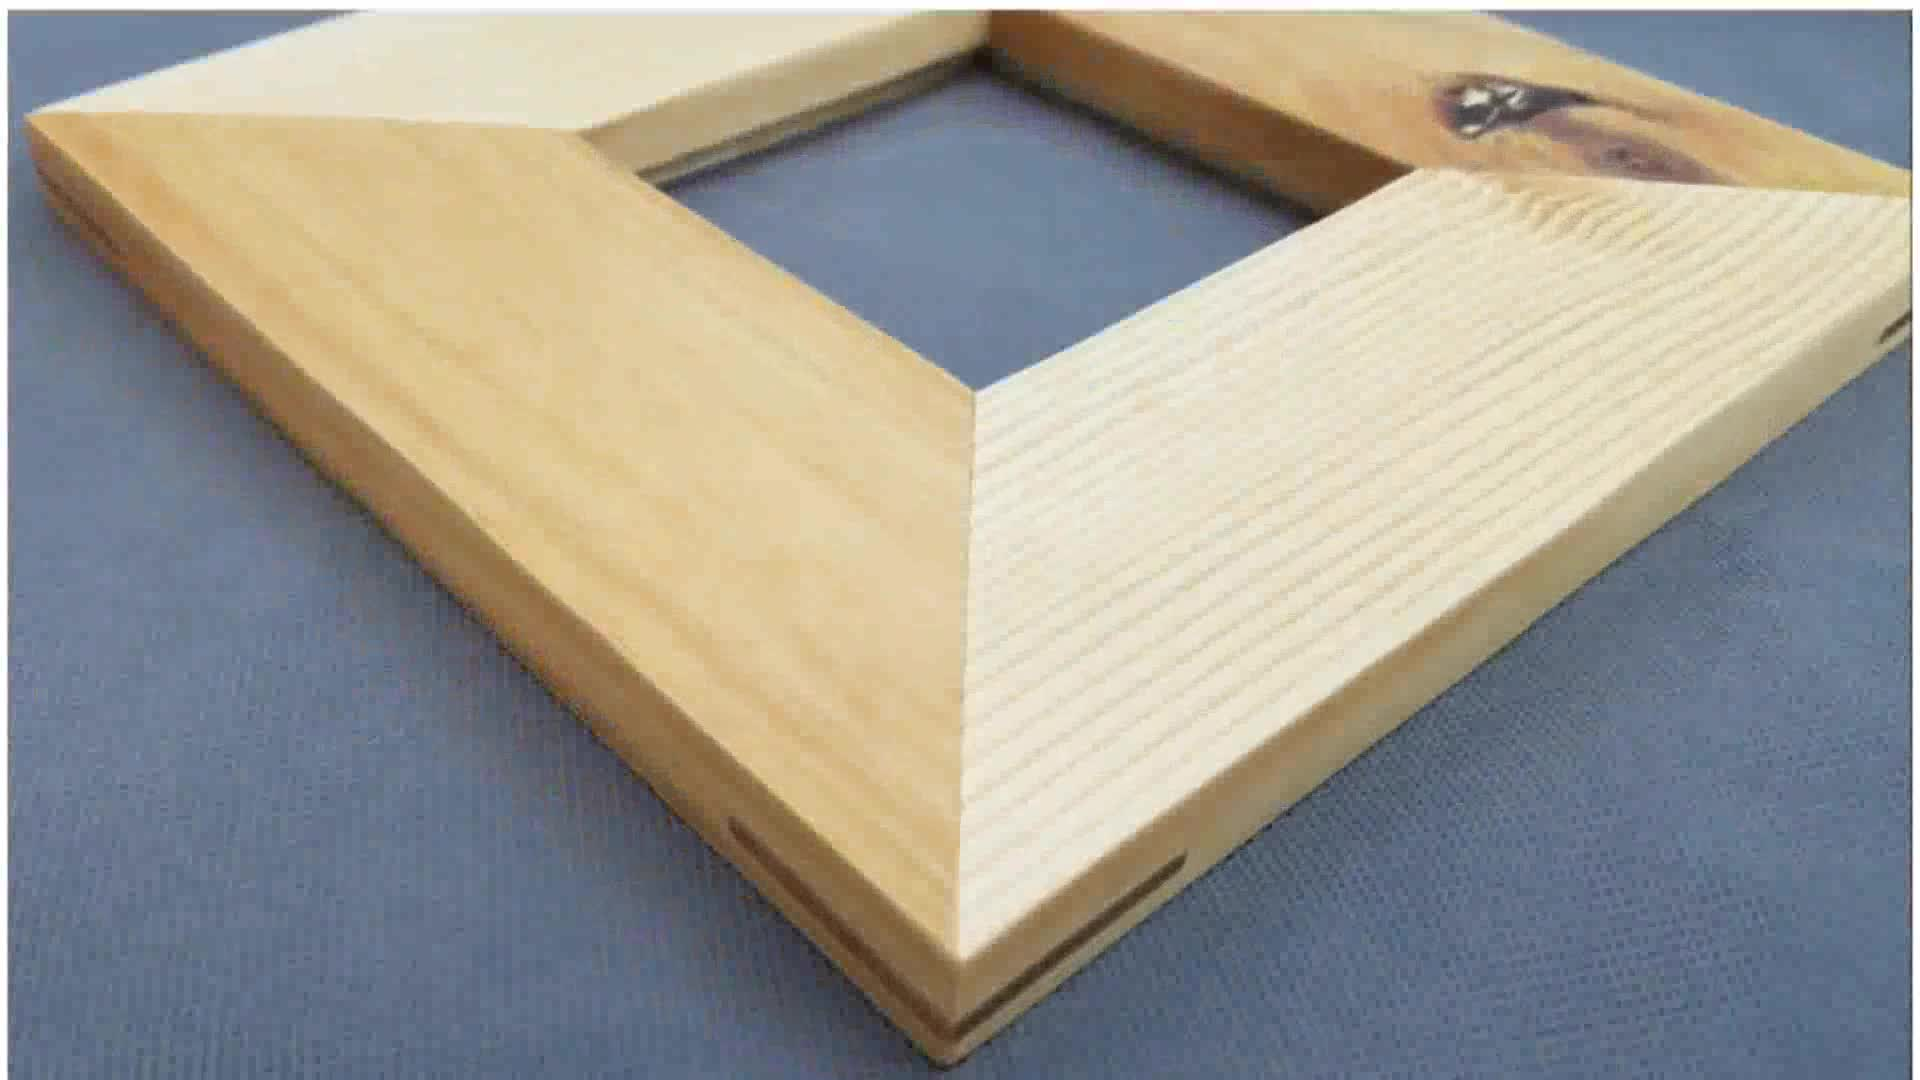 Picture of Cutting Splines in a Picture Frame